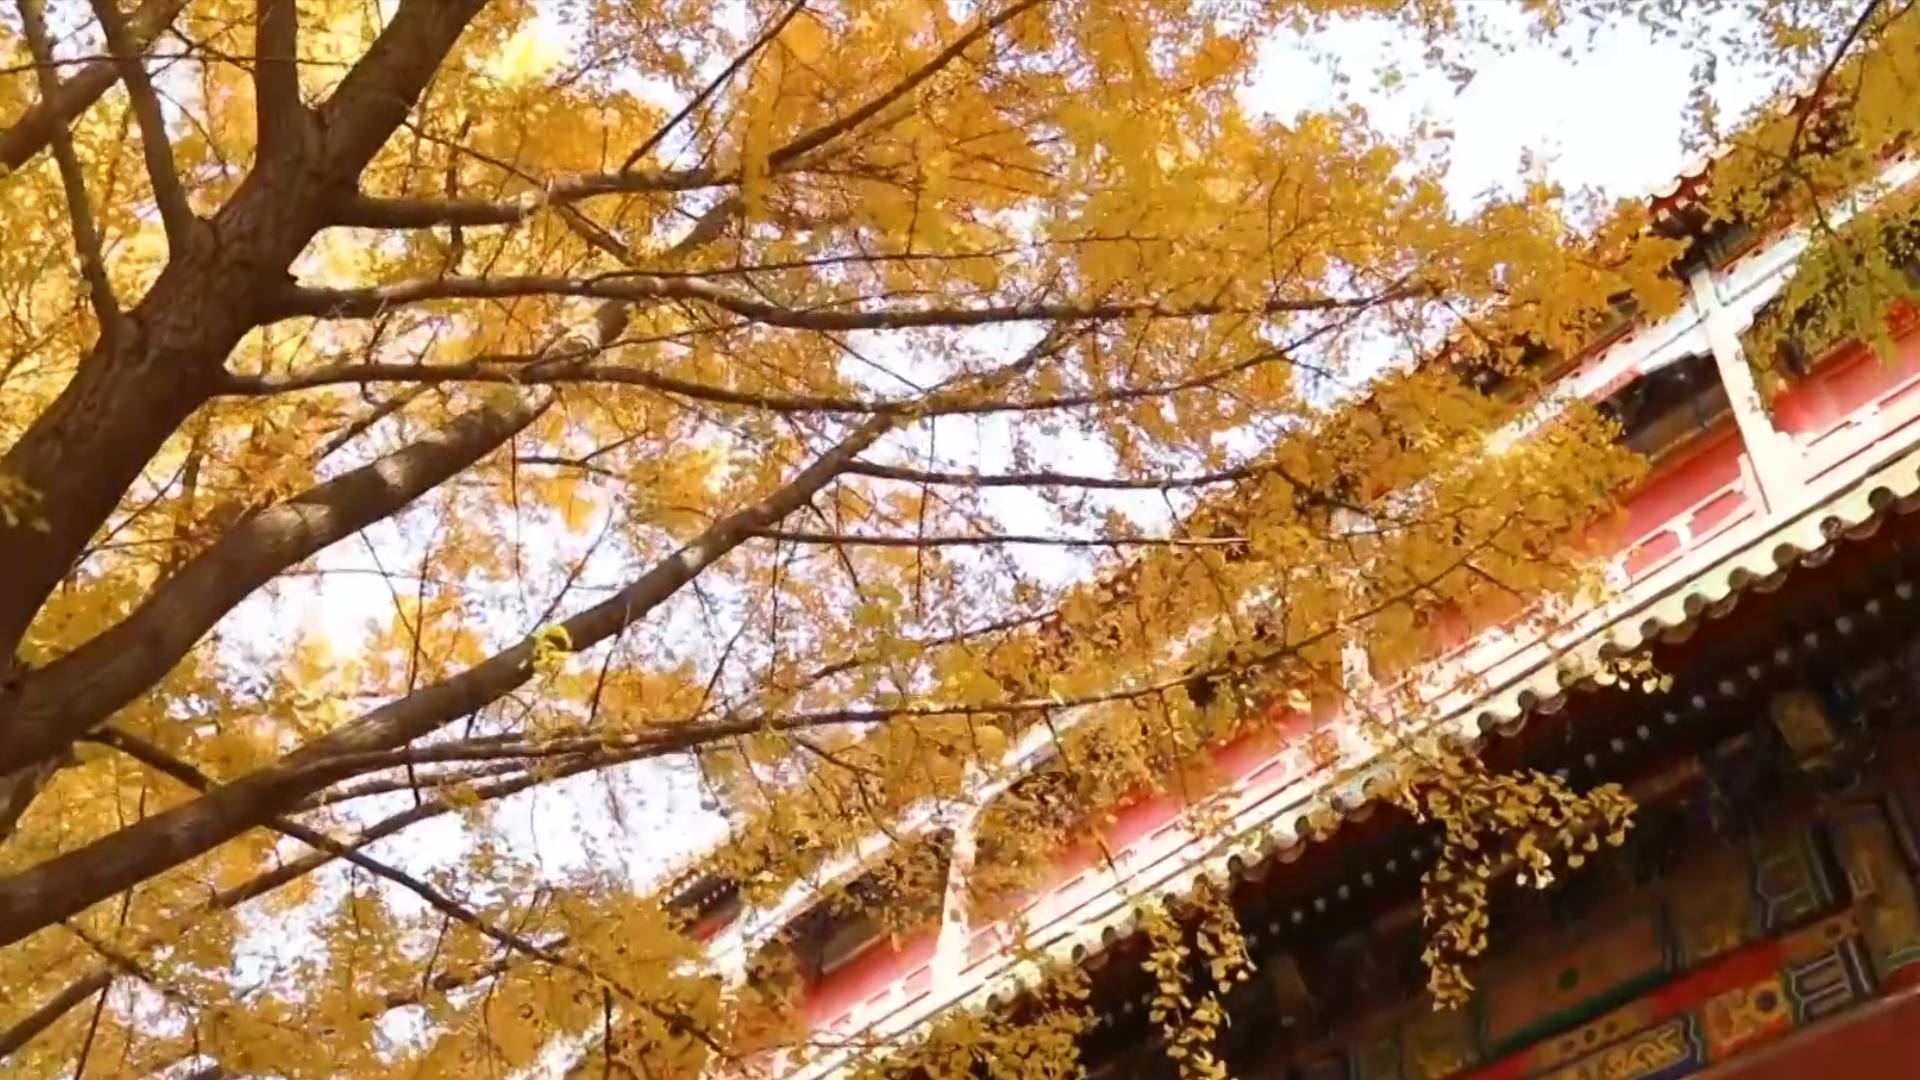 Embrace golden autumn in 600-year-old Forbidden City